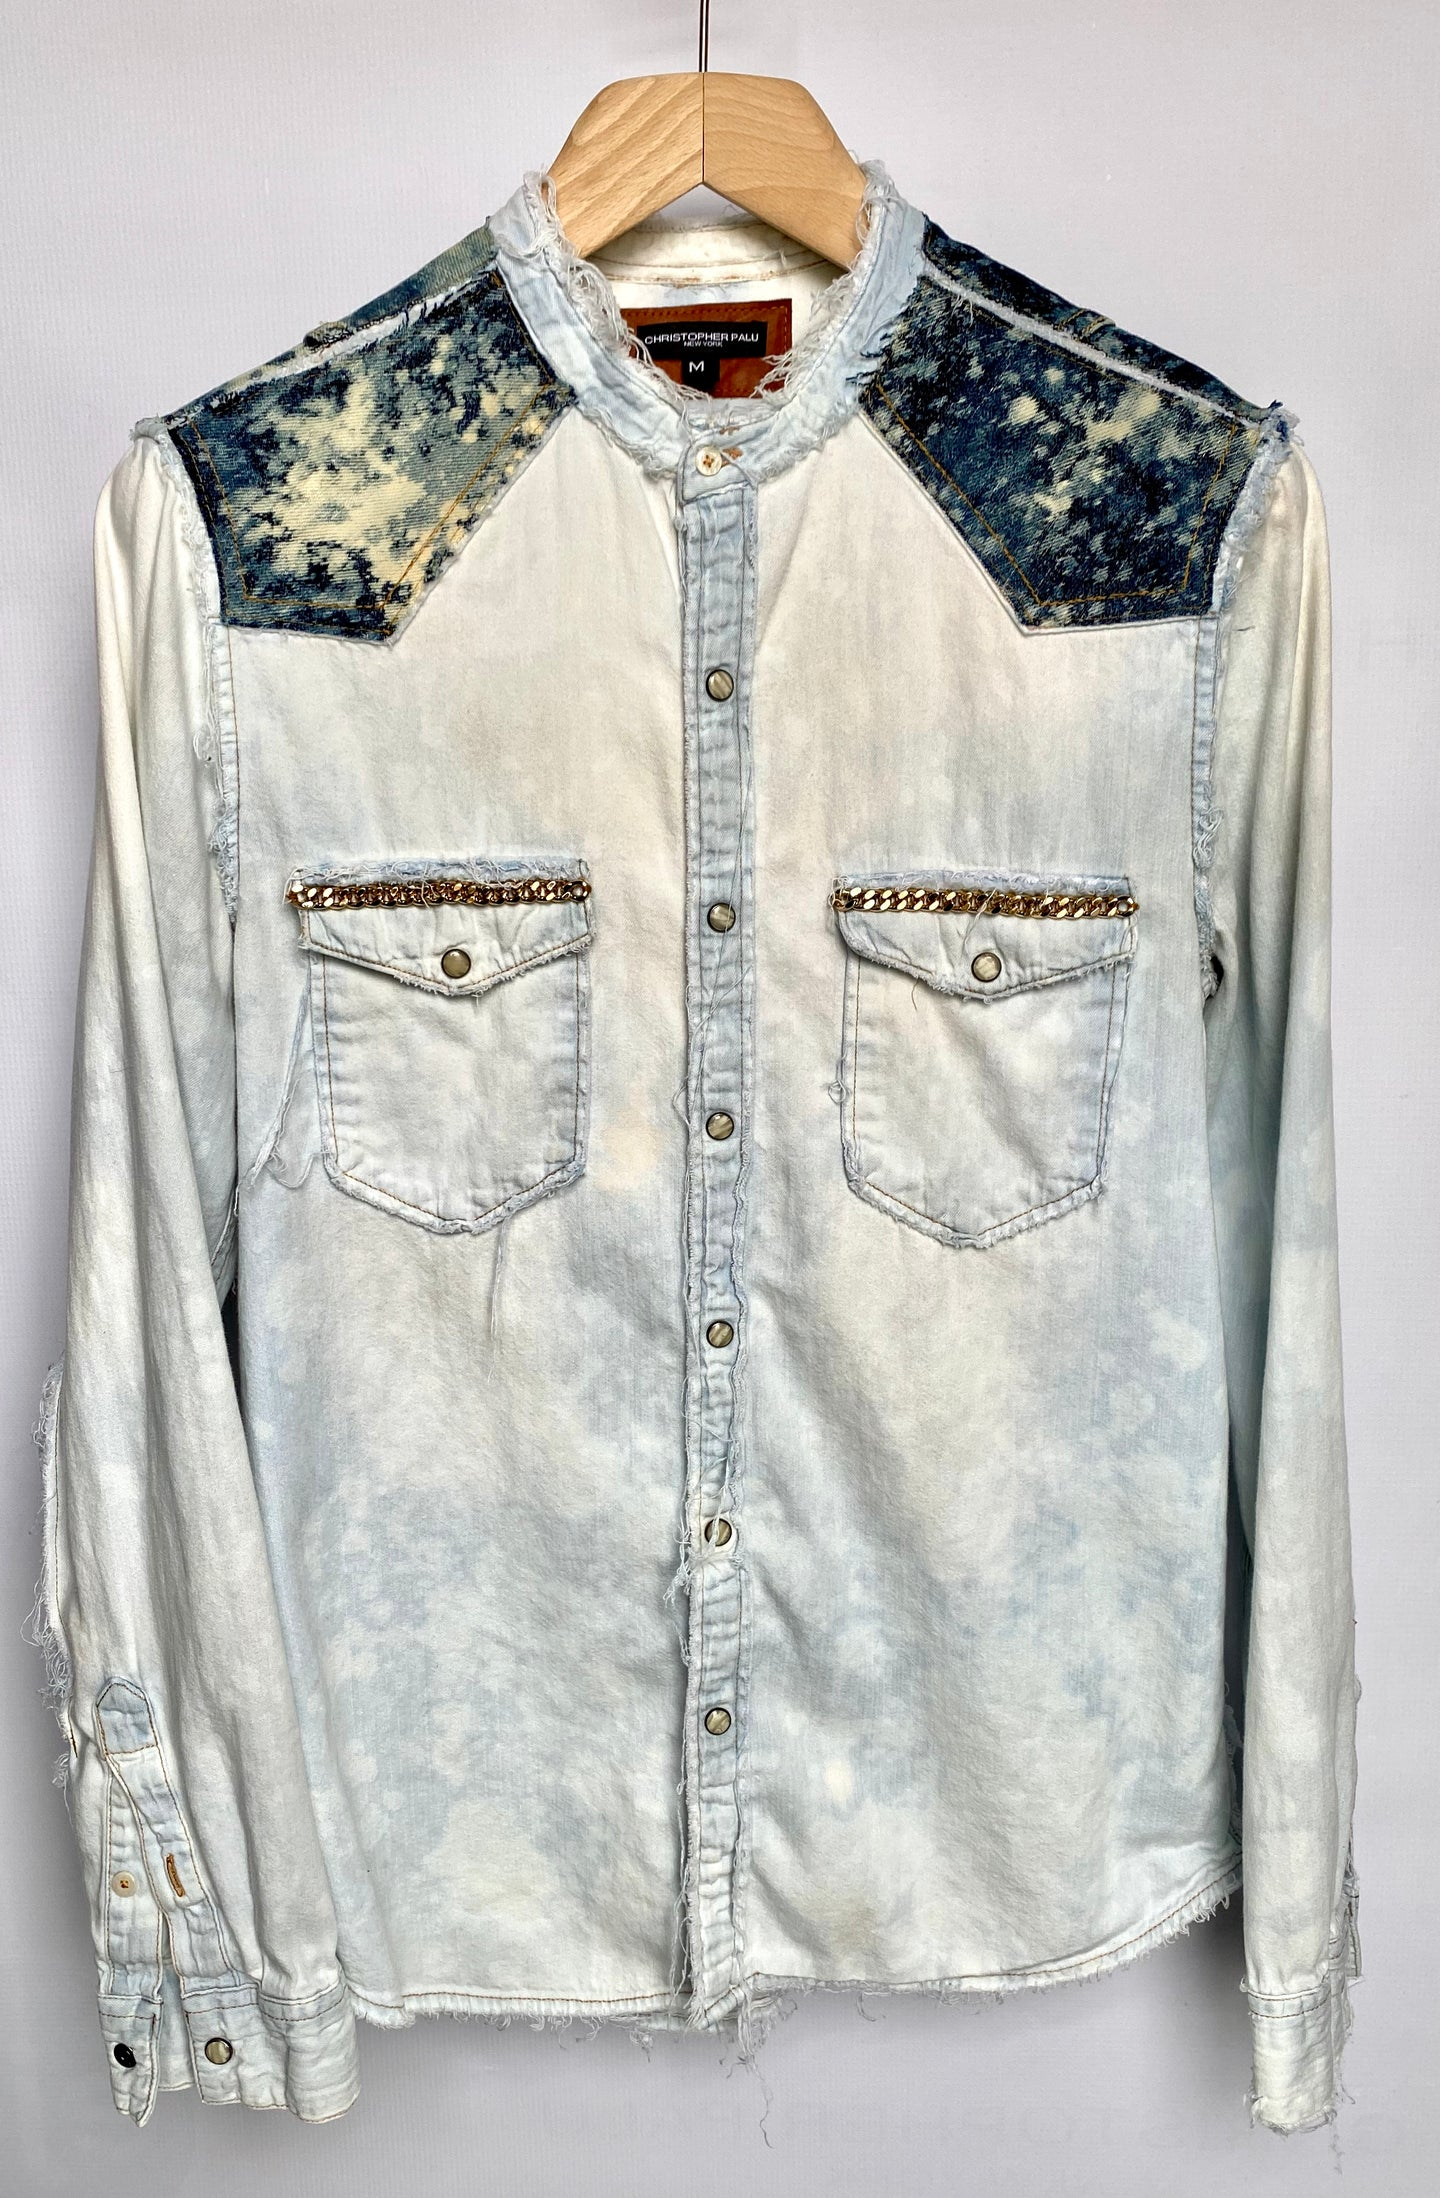 2-Toned Distressed Denim Shirt